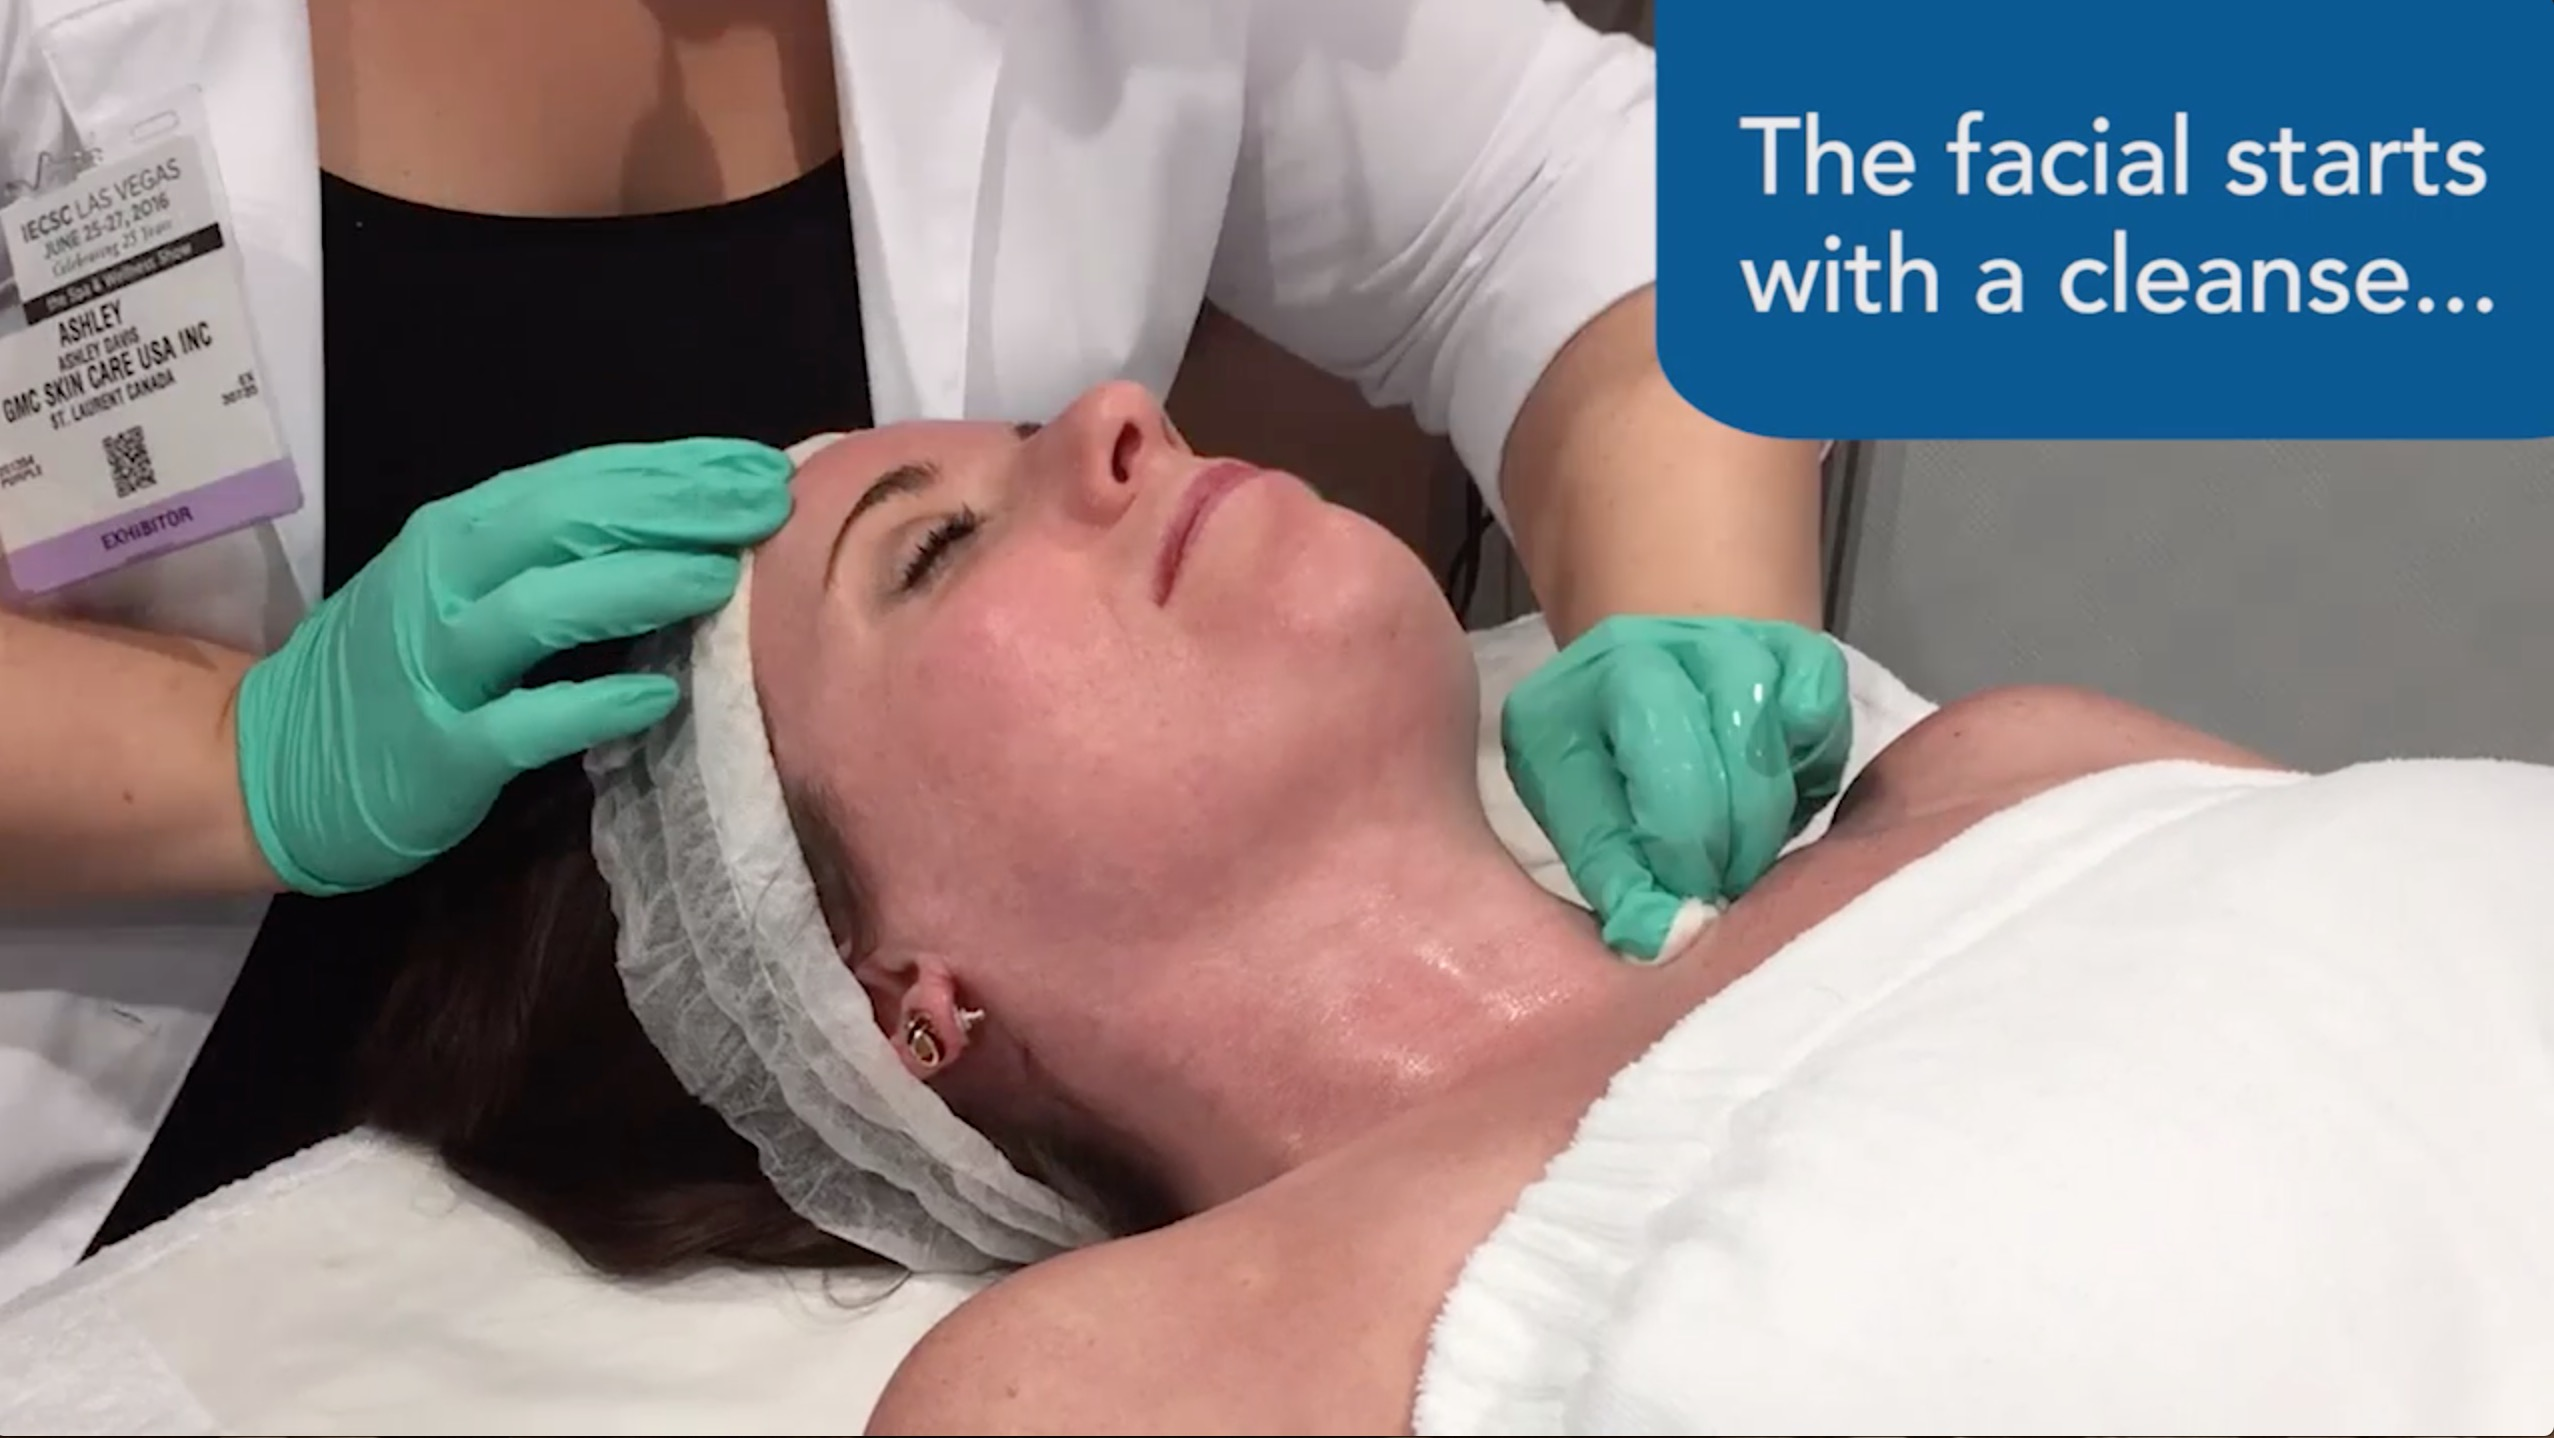 Keep an Eye Out for Carboxy Treatment